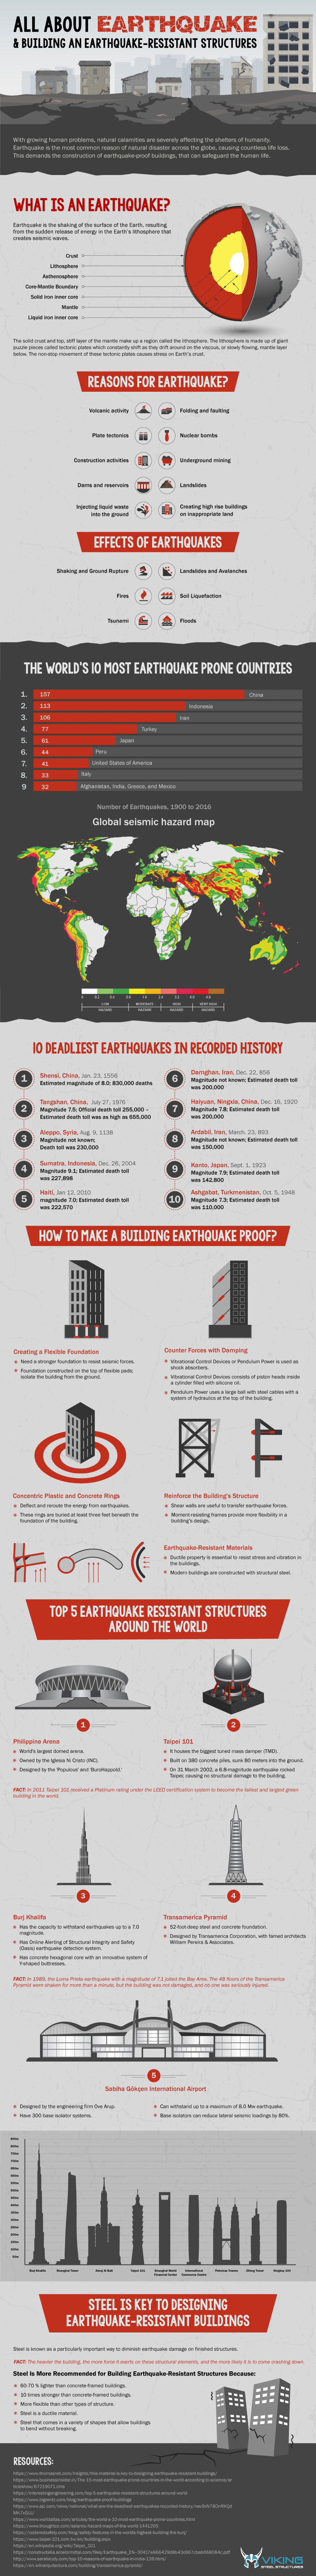 How to Build Safe Structures in an Increasingly Earthquake-Prone World - Infographic